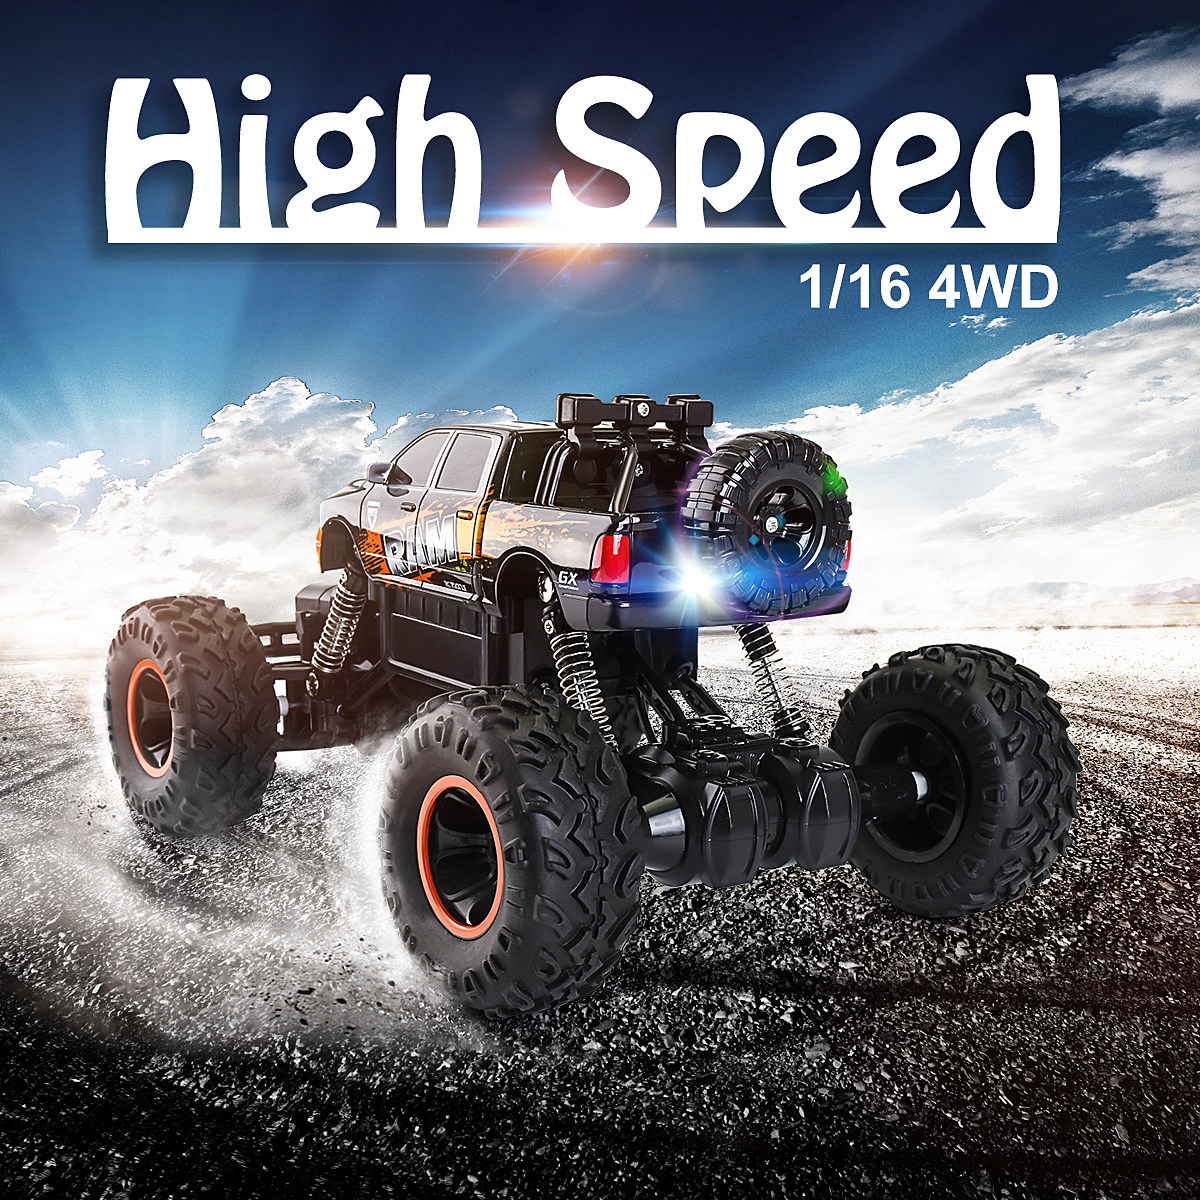 1/16 Scale 4WD 2.4G High Speed Radio Fast Remote control RC RTR Racing Buggy Crawler RTR Car Off Road Gift Toy for Children Kid hongnor ofna x3e rtr 1 8 scale rc dune buggy cars electric off road w tenshock motor free shipping